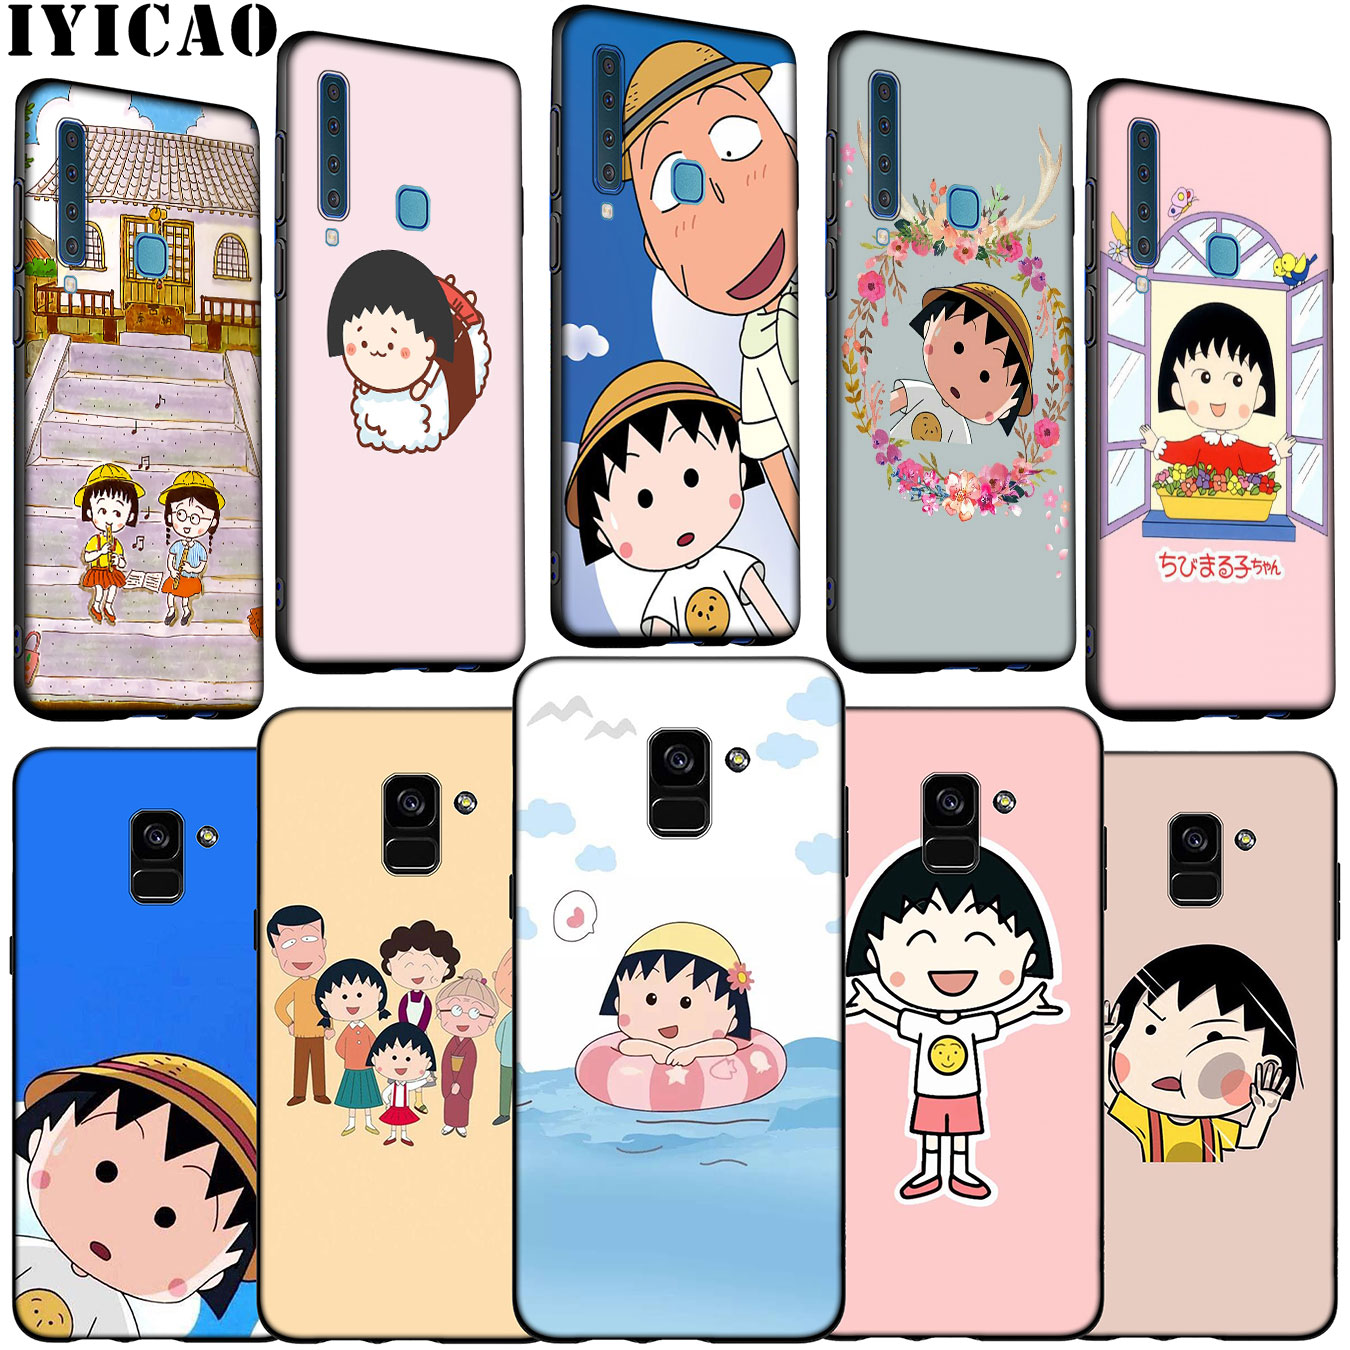 Cherry chibi maruko chan <font><b>Cartoon</b></font> Soft Silicone <font><b>Phone</b></font> <font><b>Case</b></font> for <font><b>Samsung</b></font> Galaxy A6 A7 A8 A9 2018 A3 <font><b>A5</b></font> <font><b>2016</b></font> 2017 Note 9 8 10 Plus image